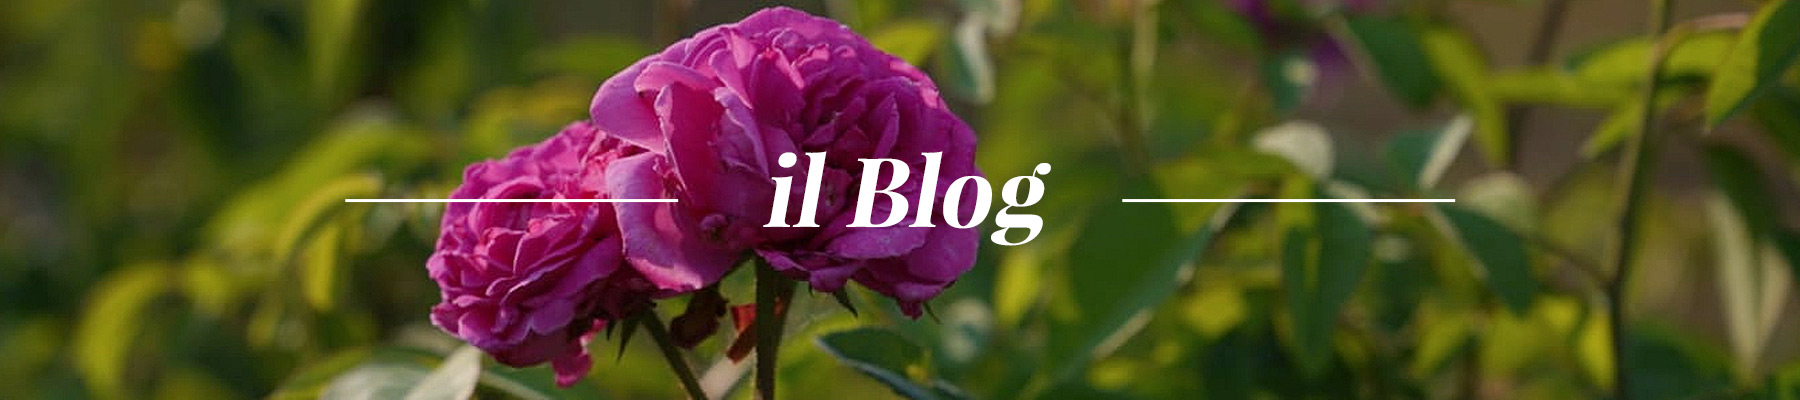 header-il-blog